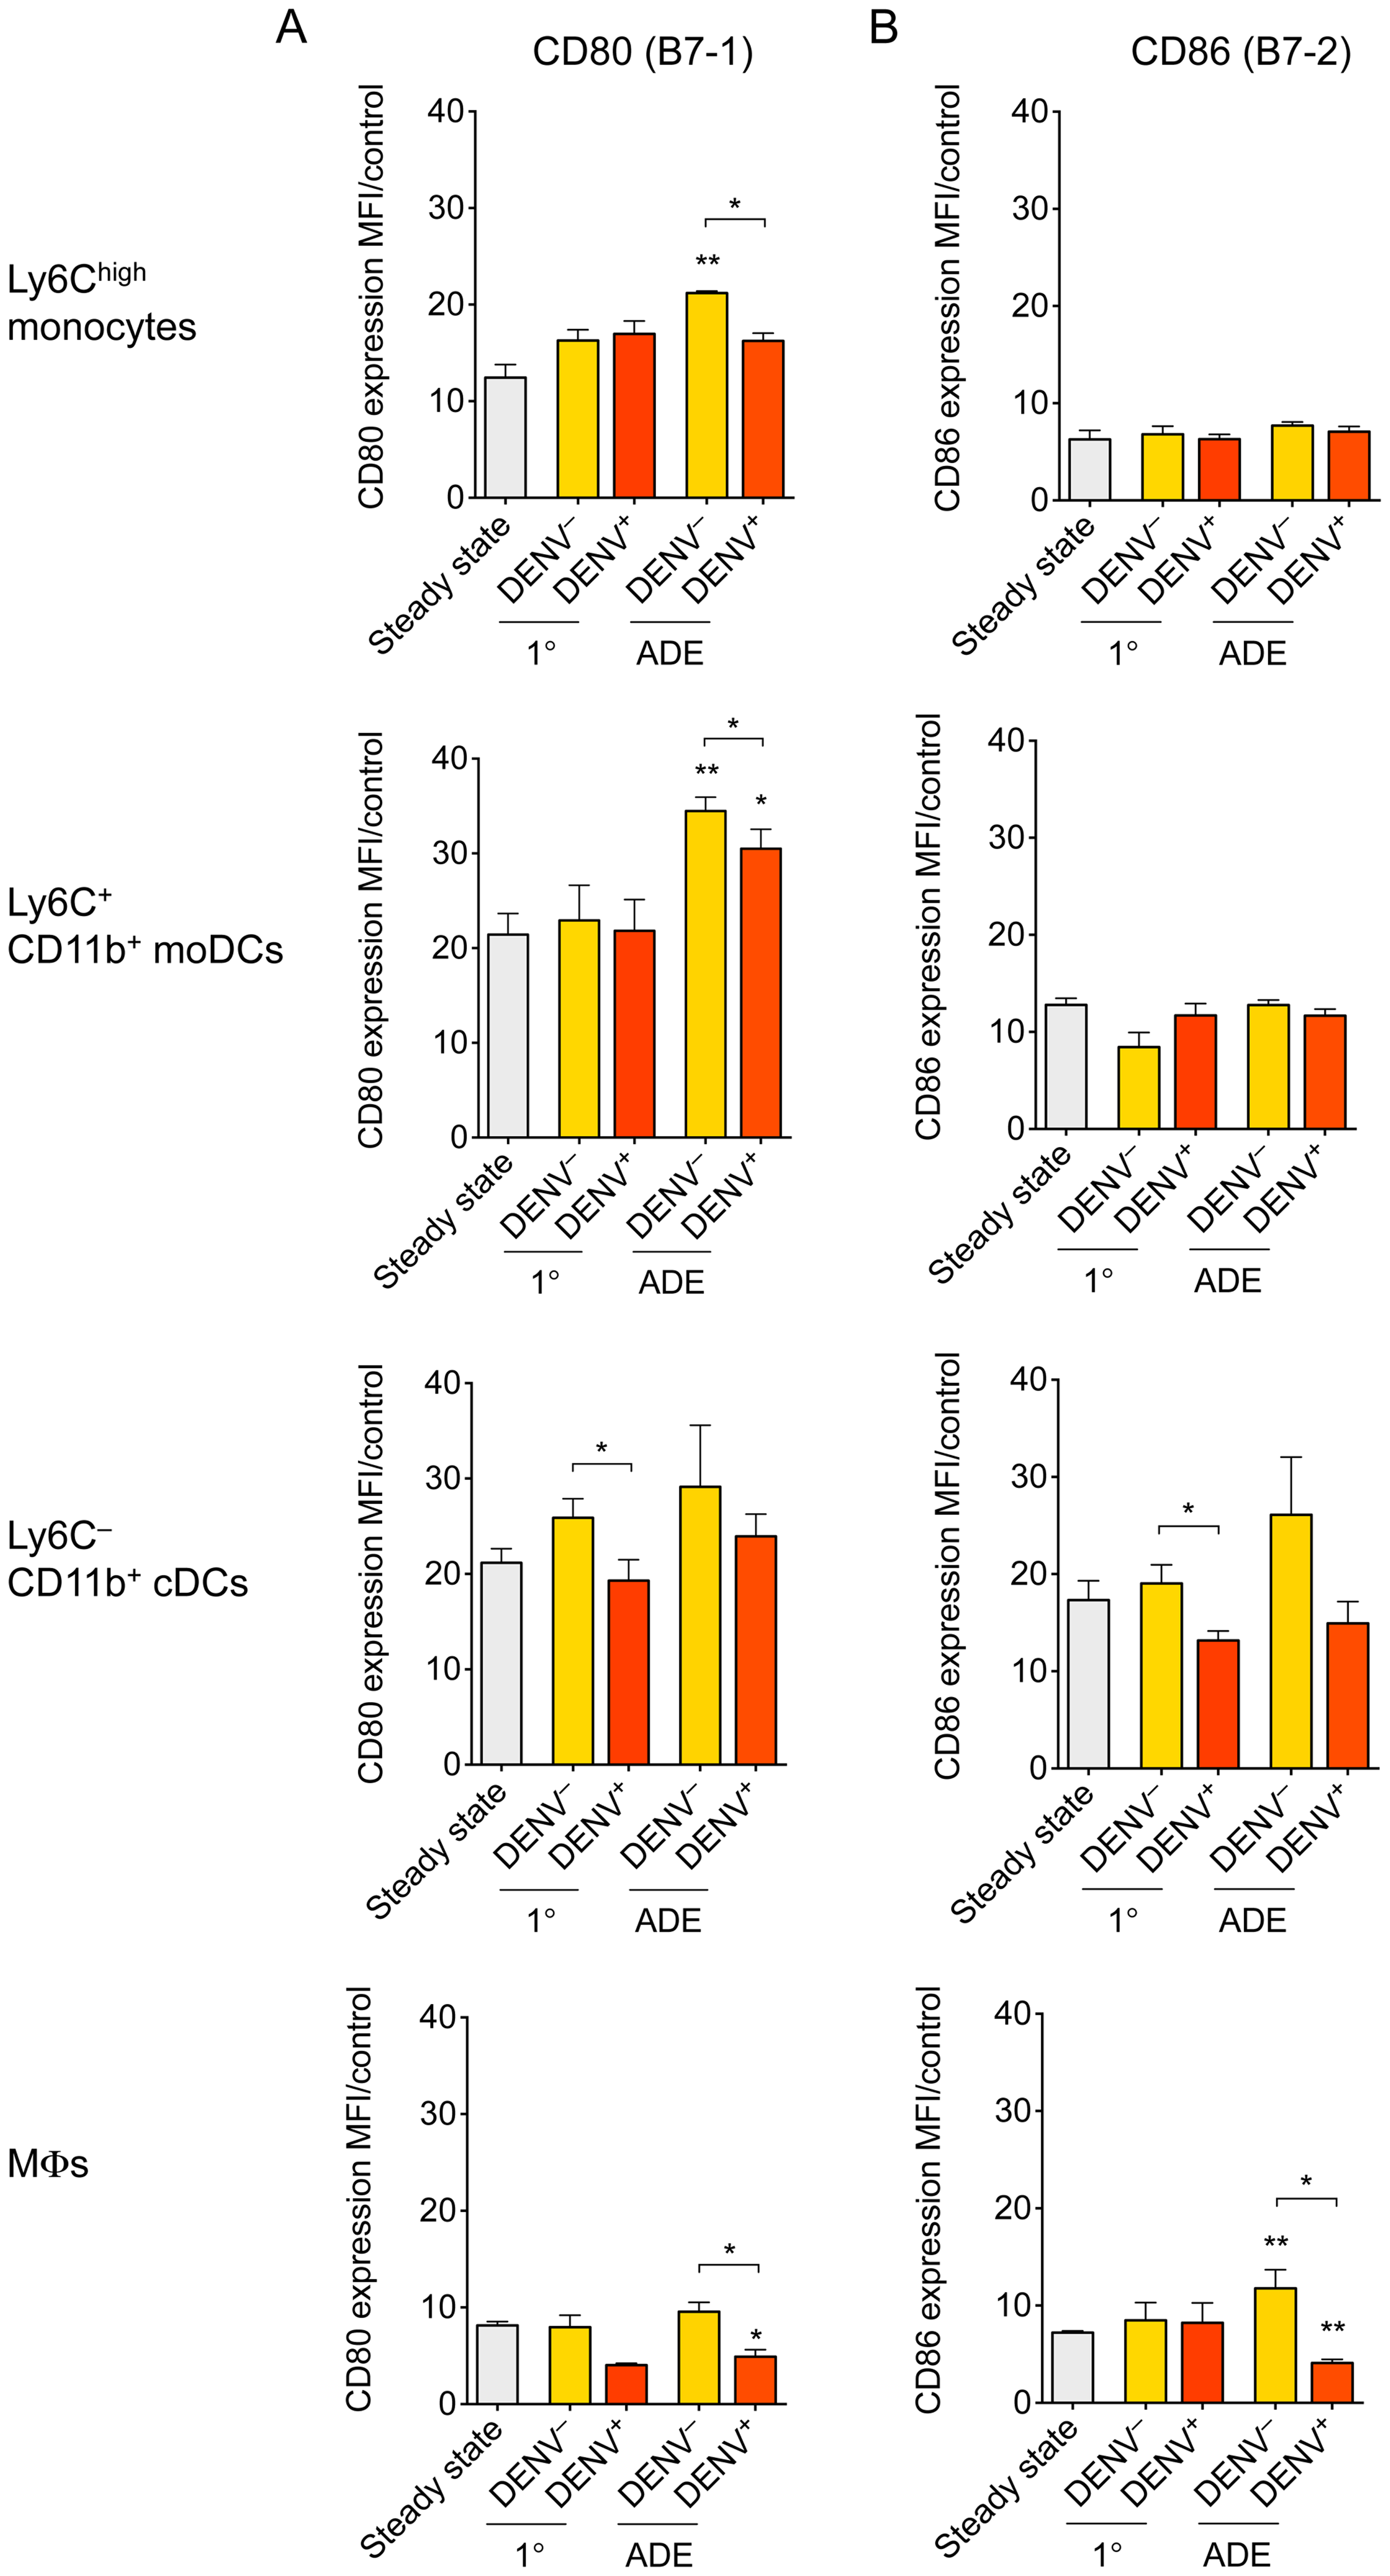 Expression of activation markers on Ly6C<sup>high</sup> monocytes, moDCs, cDCs and MΦs.